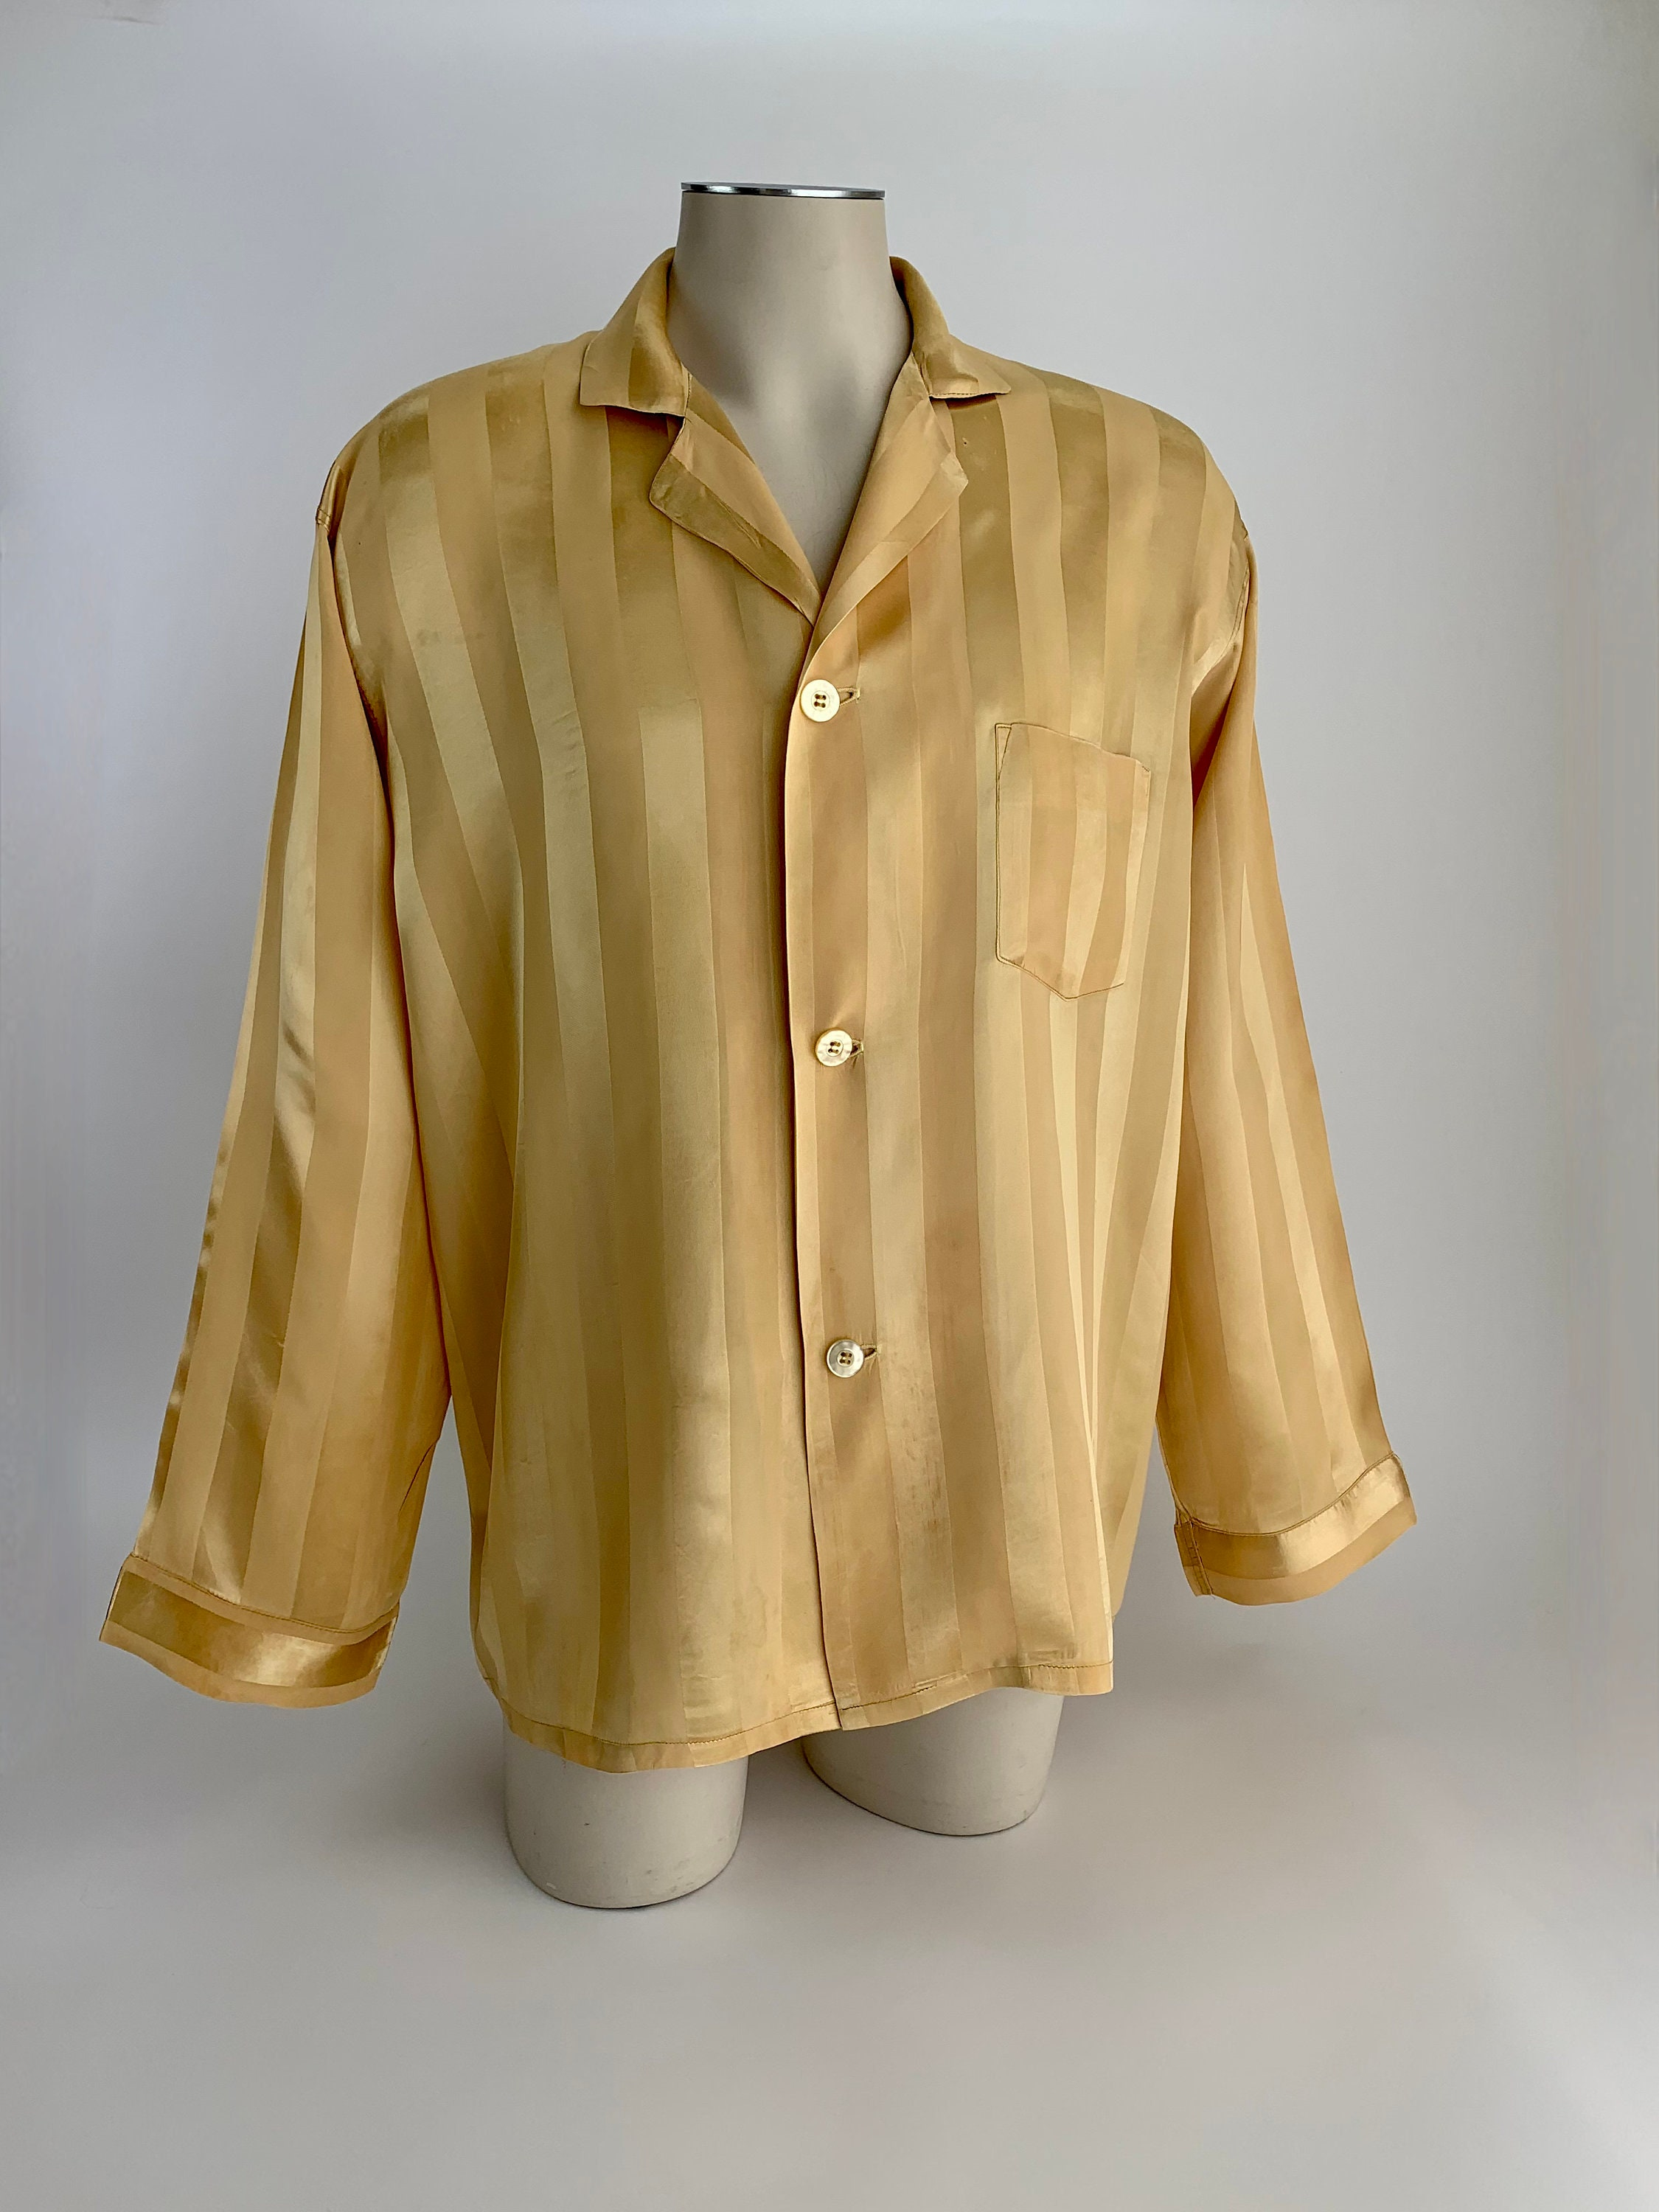 1940s Men's Shirts, Sweaters, Vests 1940s Pajama Lounge Shirt - Wide Striped Jacquard Fabric Patch Pocket Notched Collar Old Hollywood Style Mens Size Large $22.95 AT vintagedancer.com